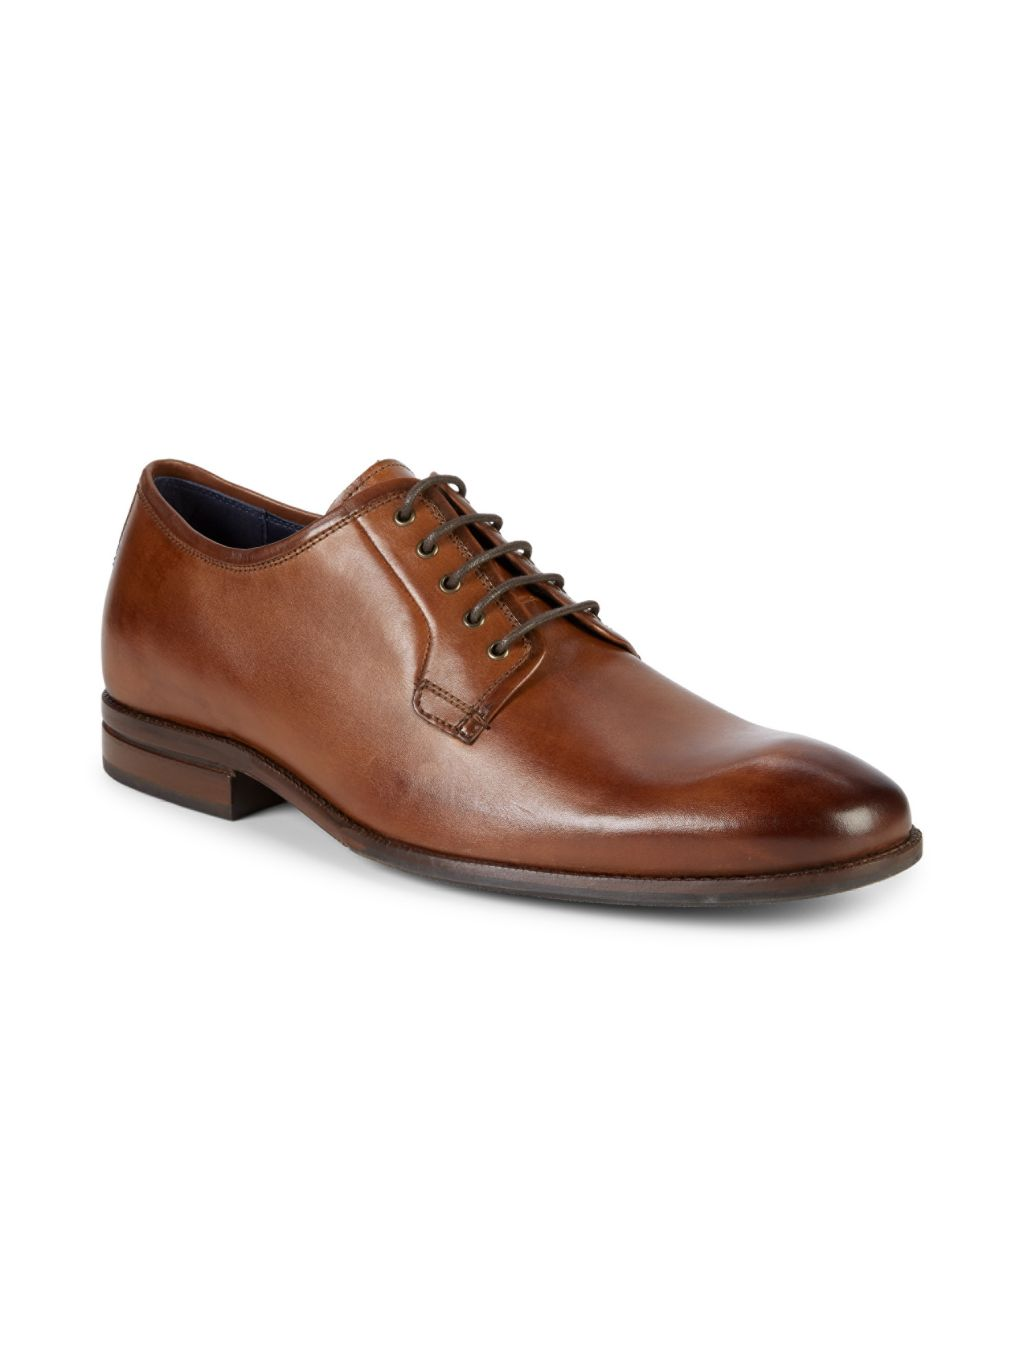 Cole Haan Warner Grand 360 Leather Derby Shoes